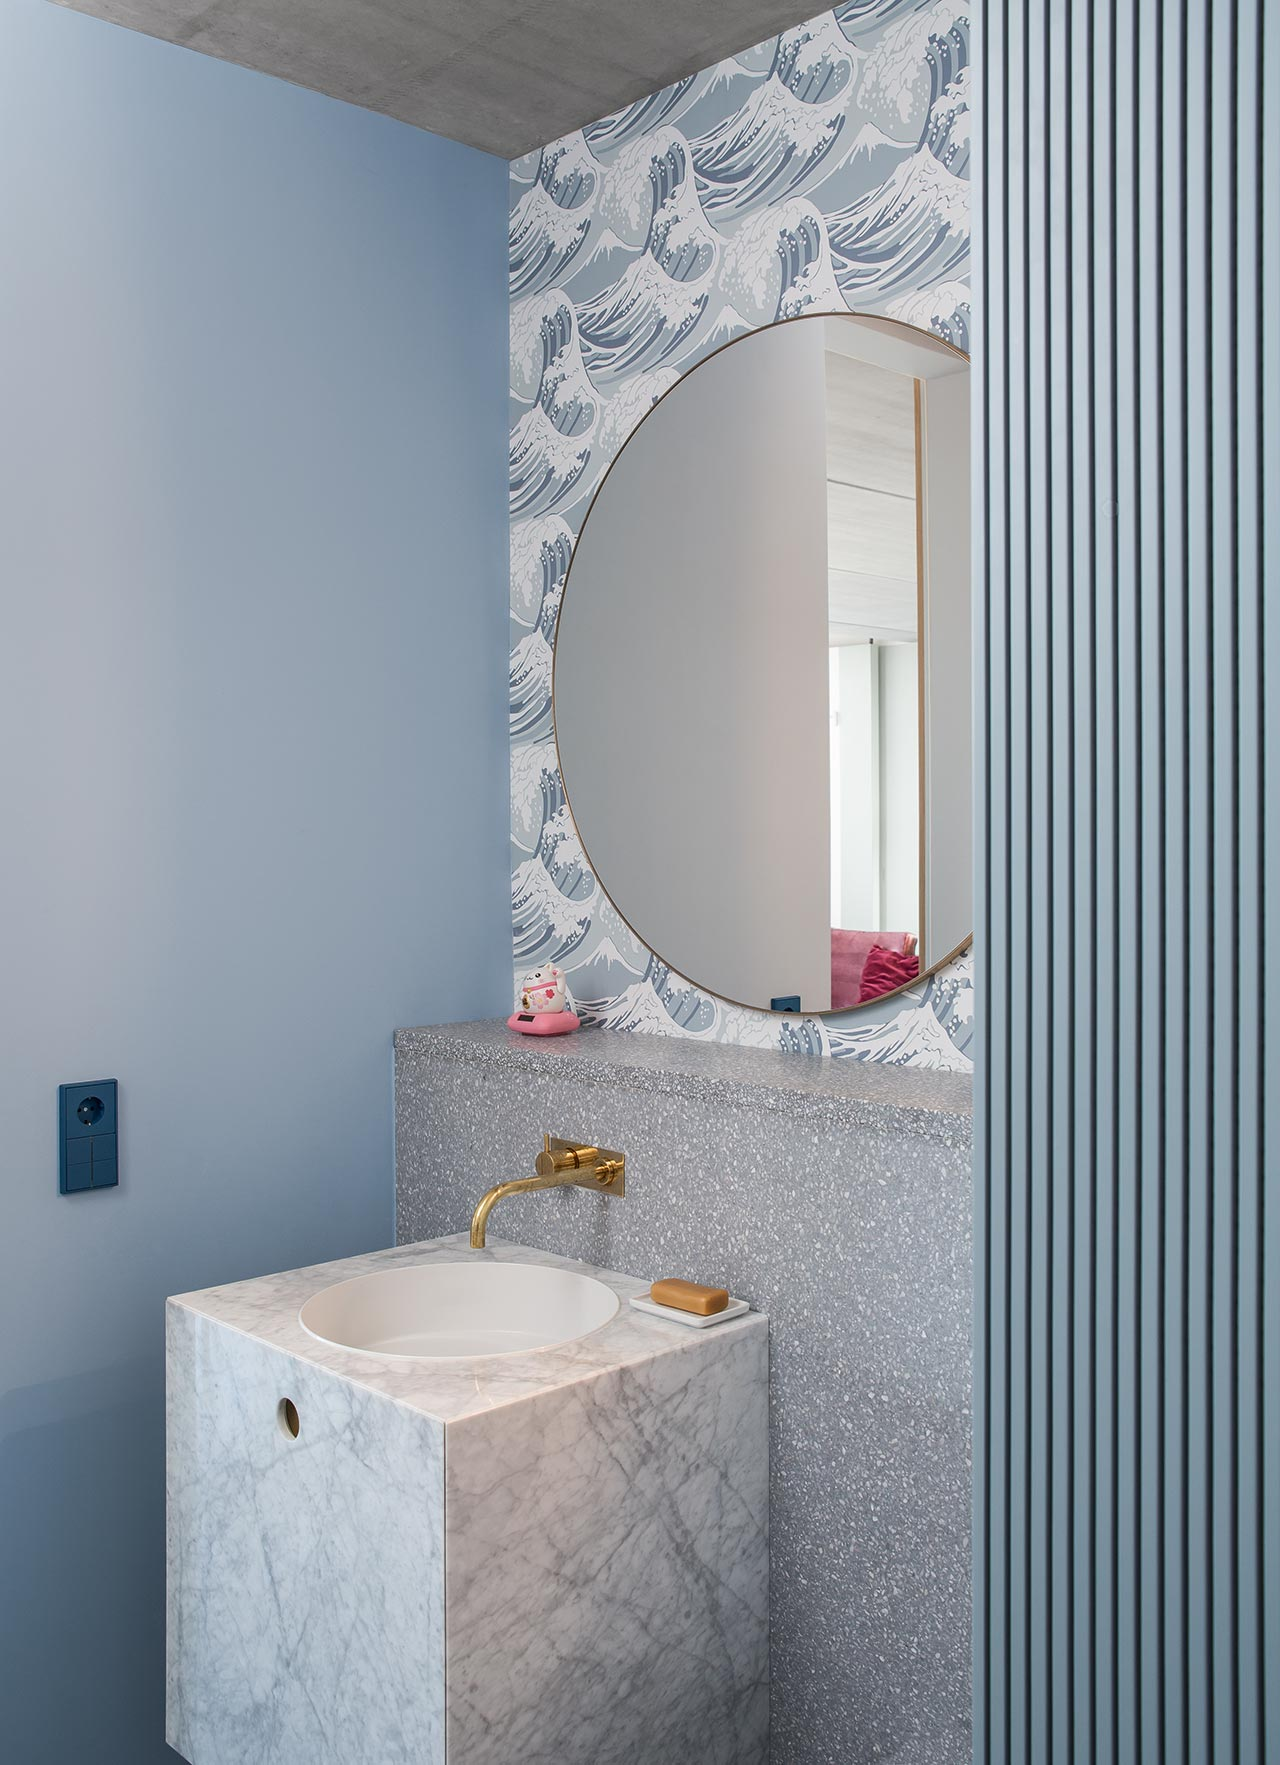 The bathroom features greys and blues, there's stone, terrazzo, wallpaper and paint to bring more textures in